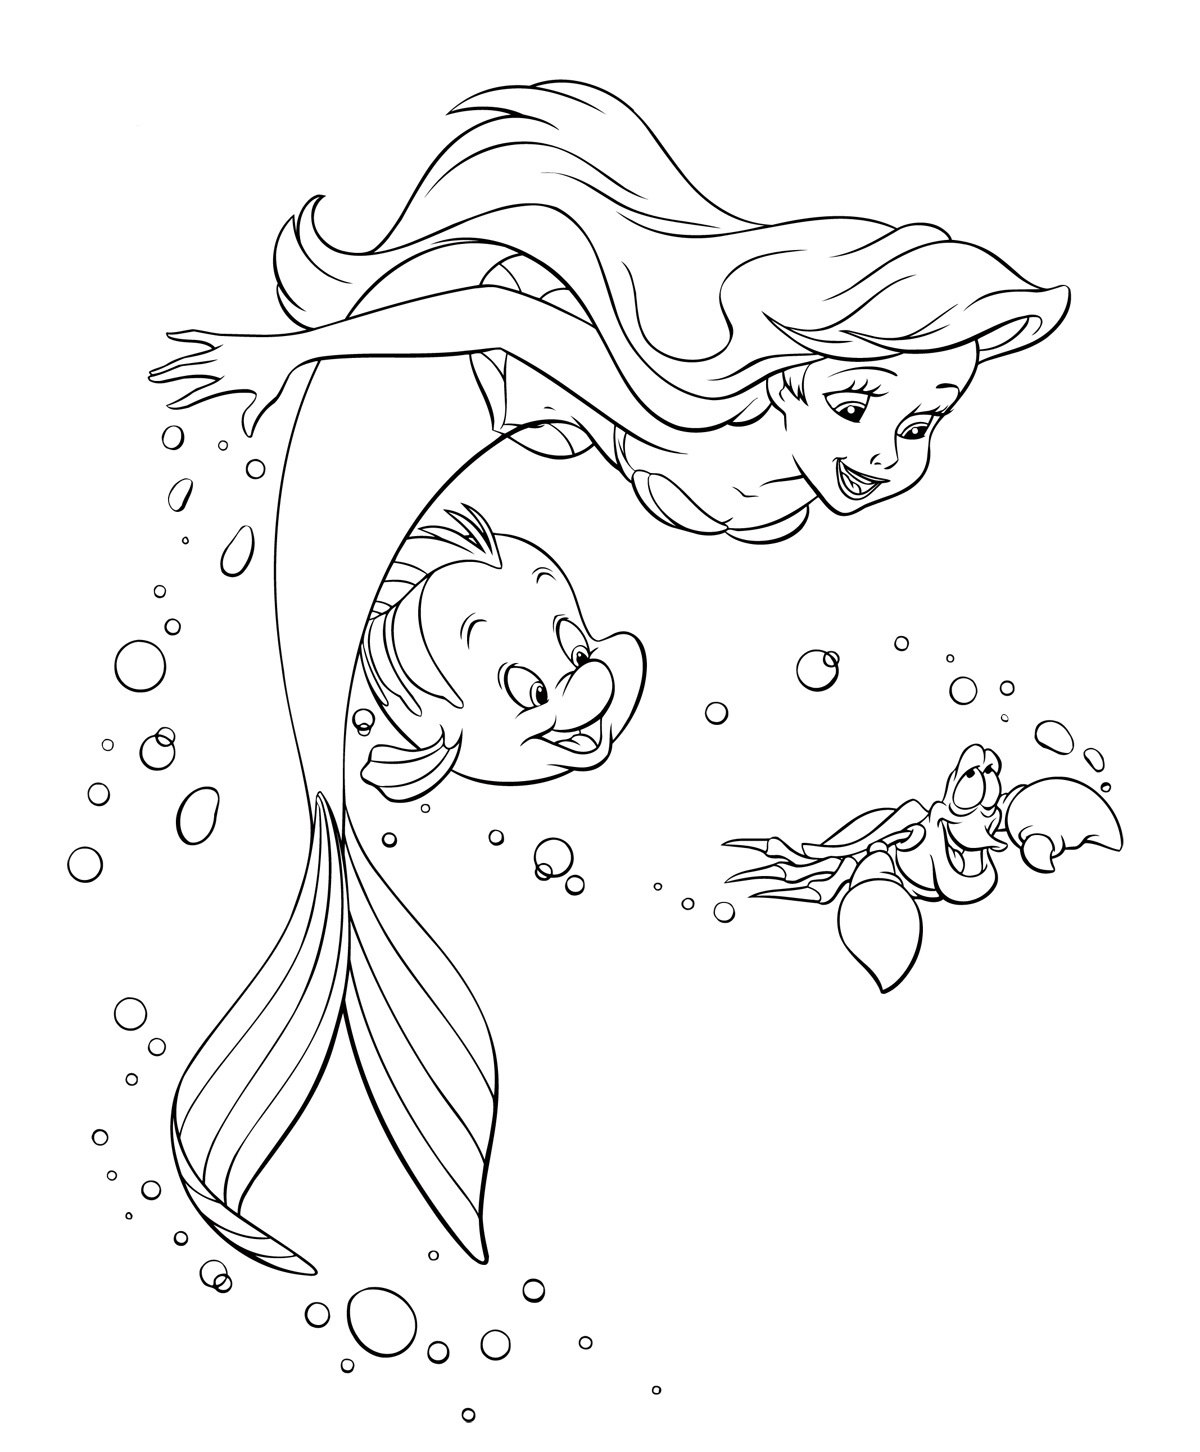 ariel colouring sheets princess ariel little mermaid coloring pages fantasy ariel colouring sheets